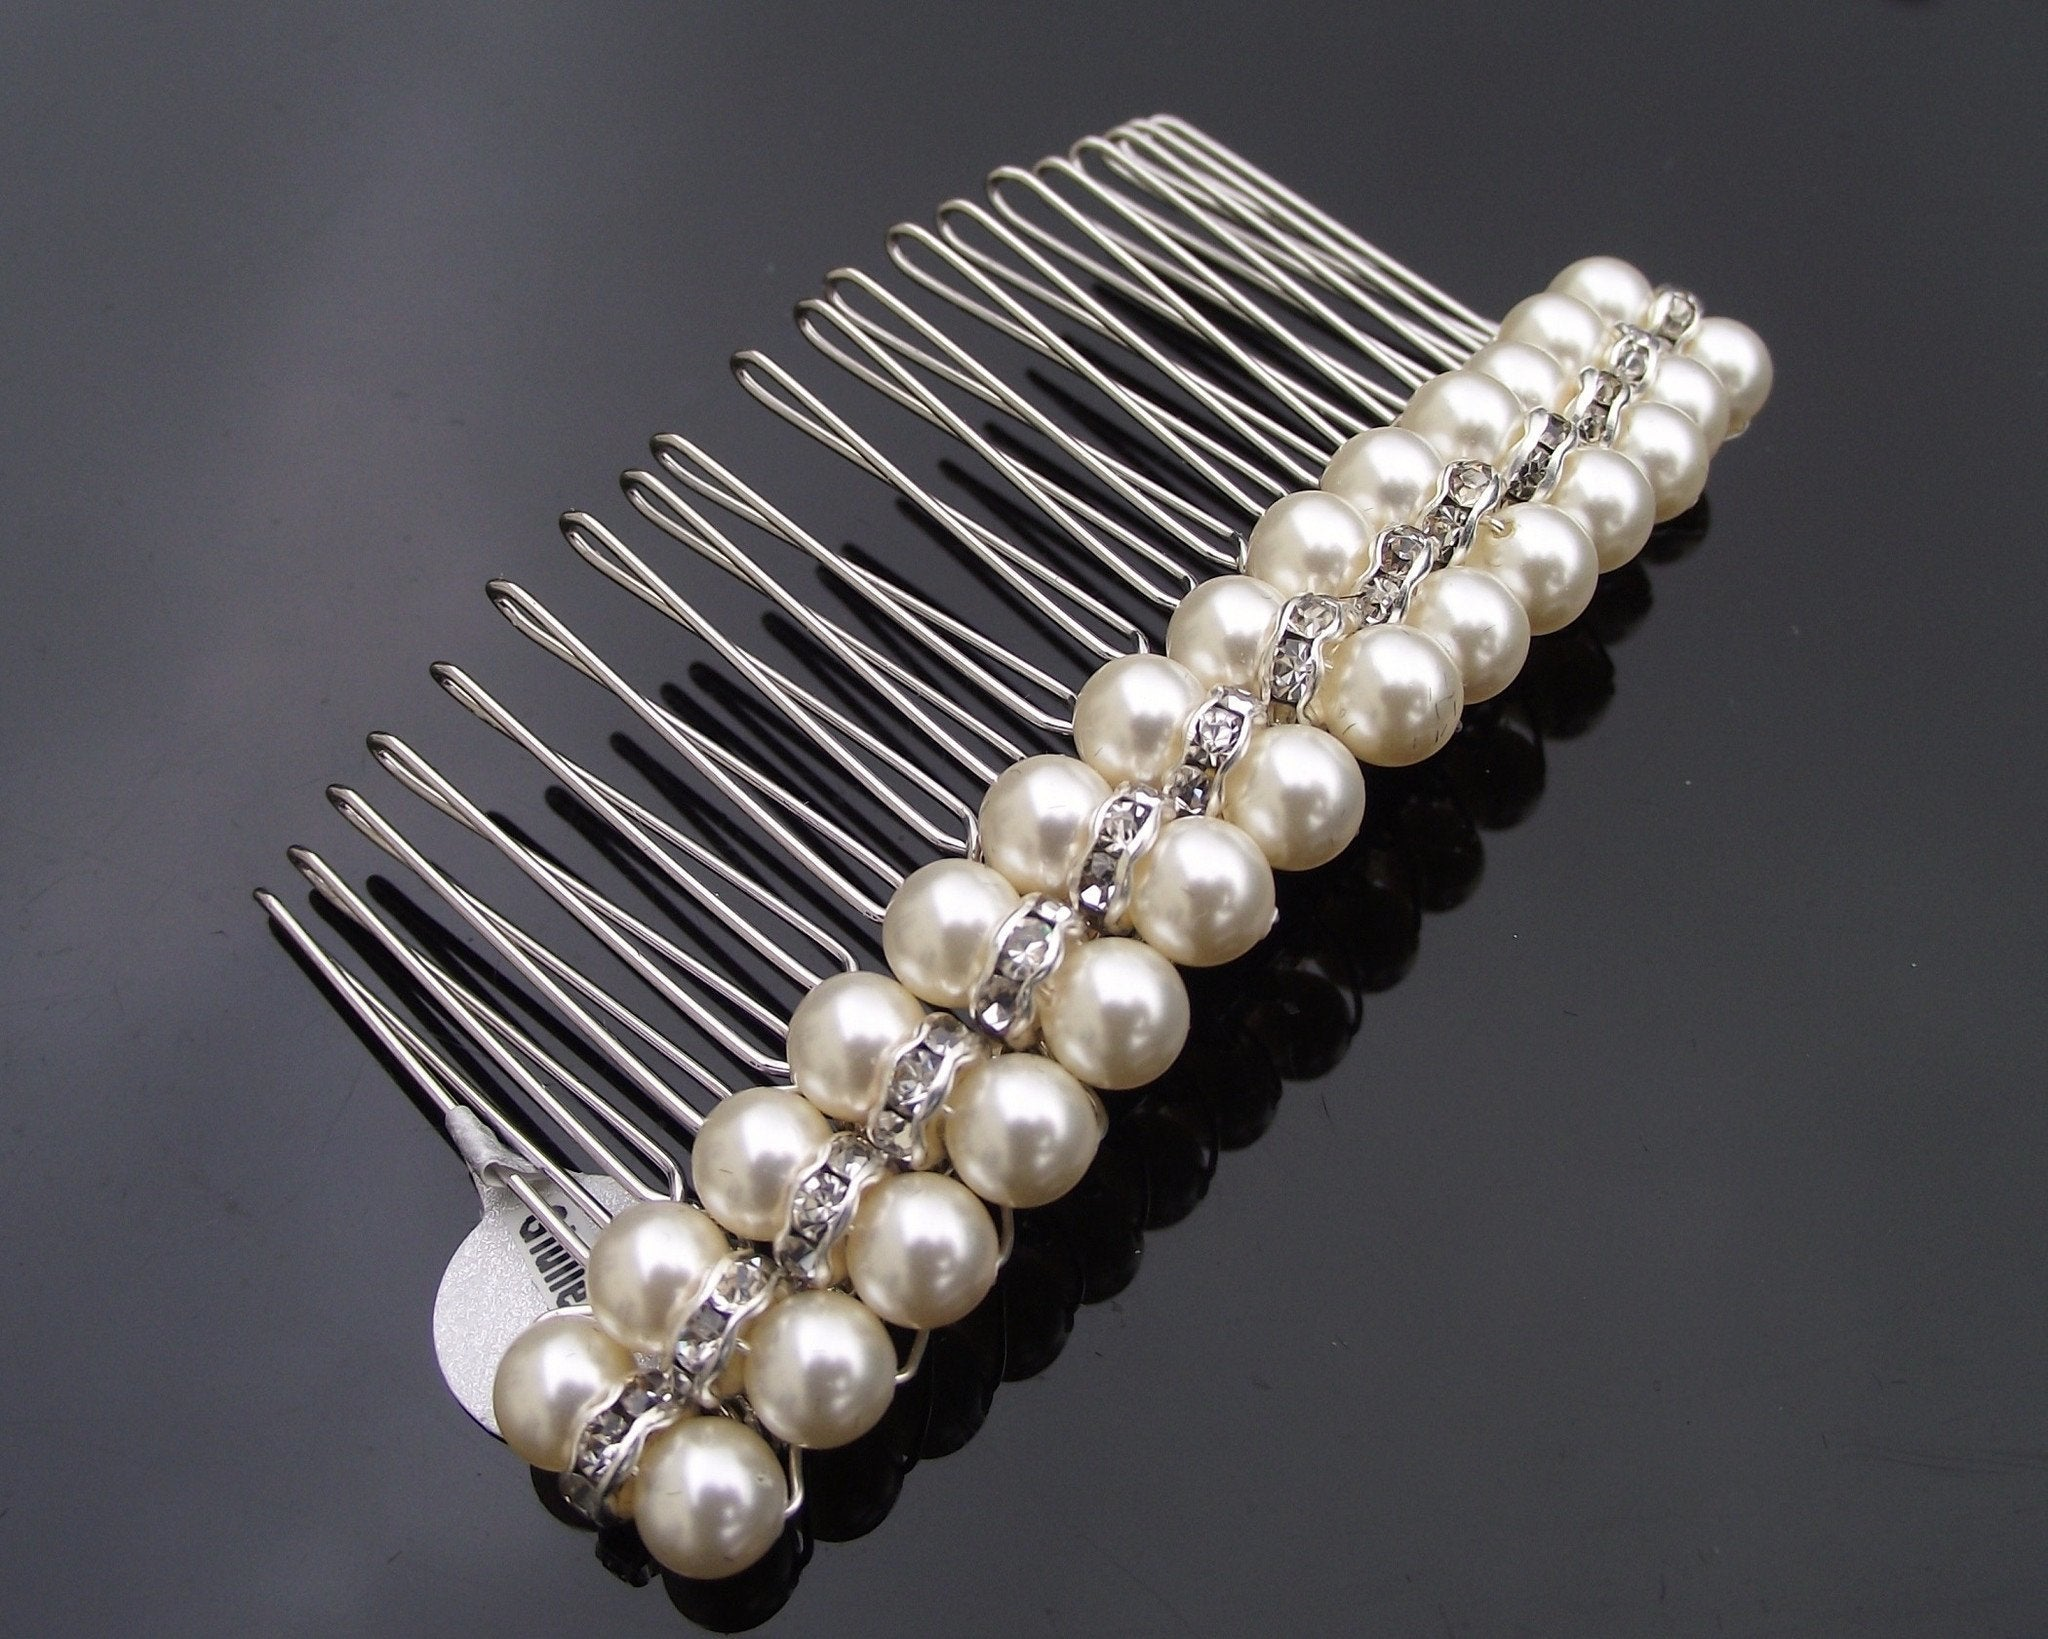 Wedding Hair Combs - Classically Styled Pearl & Crystal Wedding Hair Comb, Giulietta